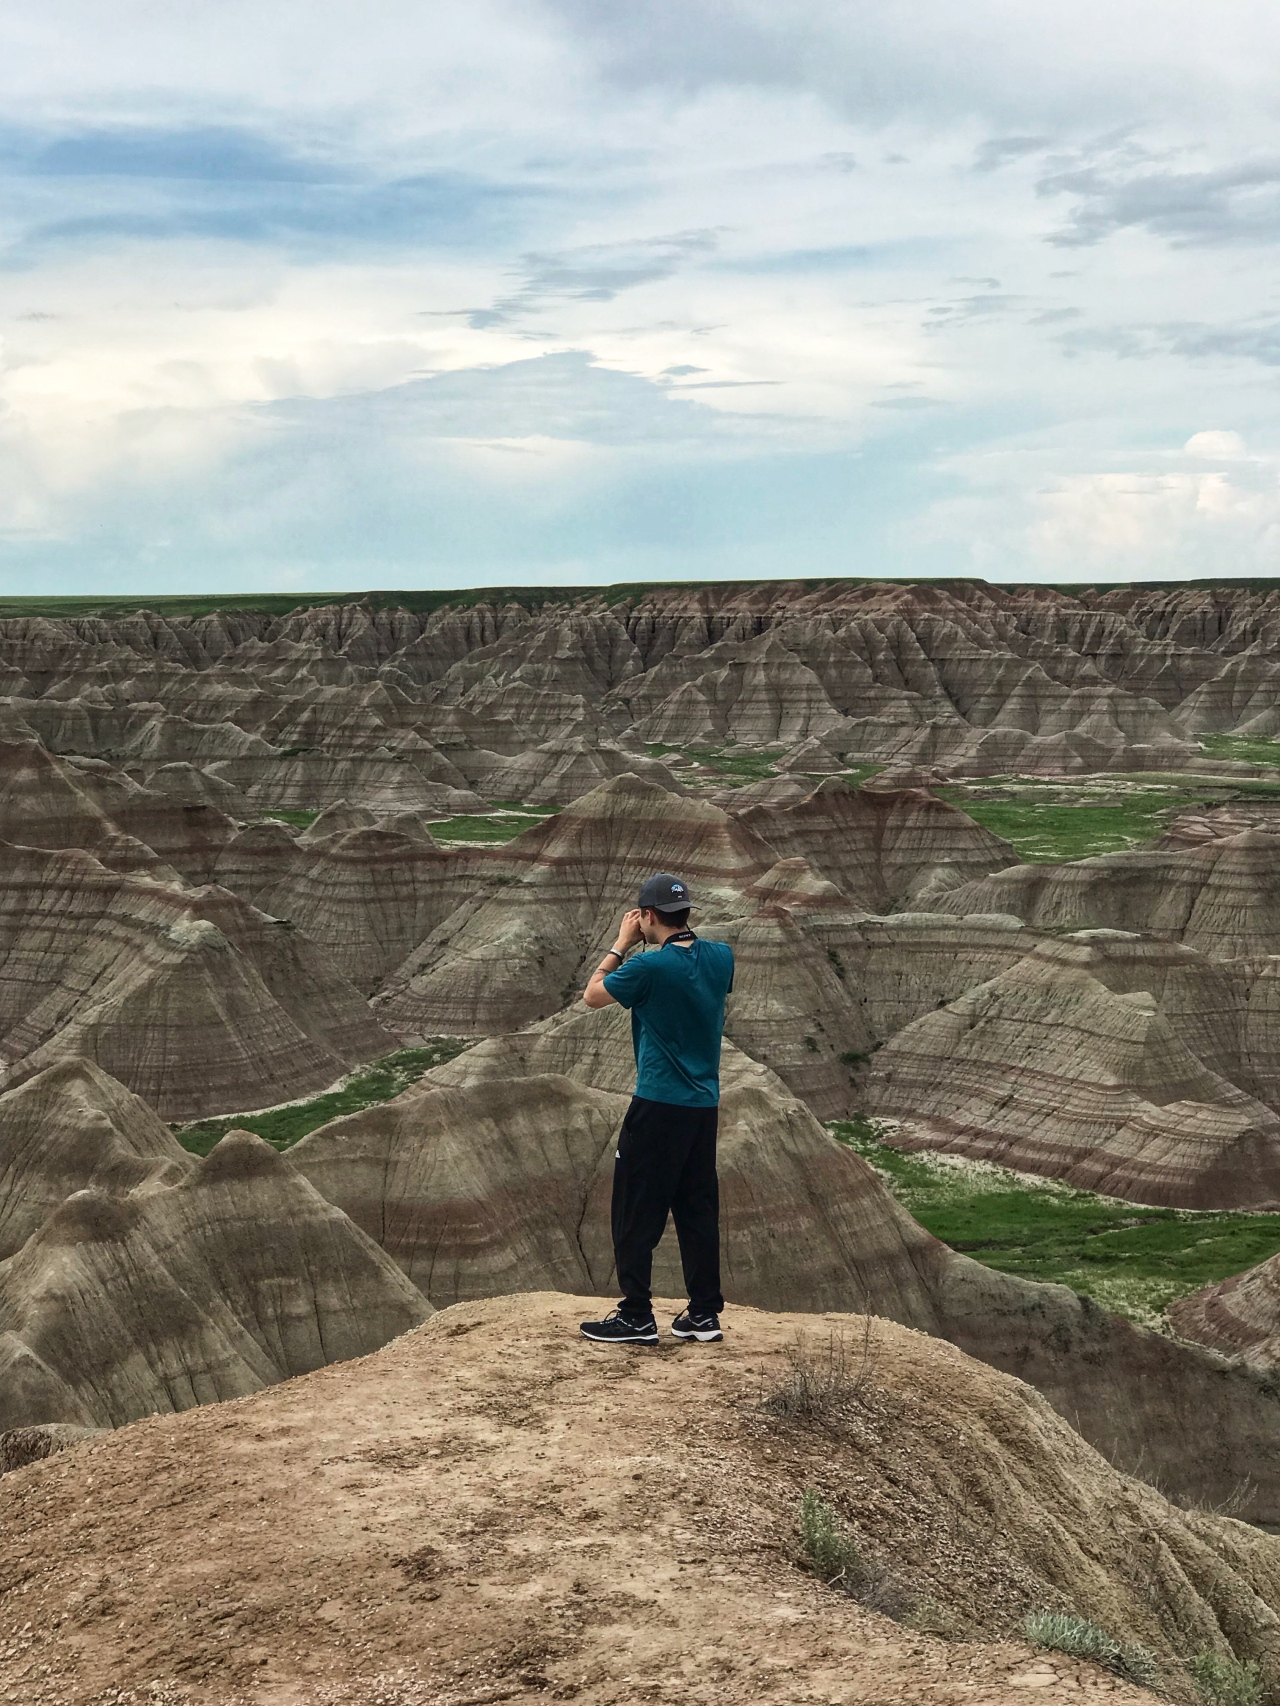 Road Trip to South Dakota and the Badlands NP: Day Eleven6/4/19